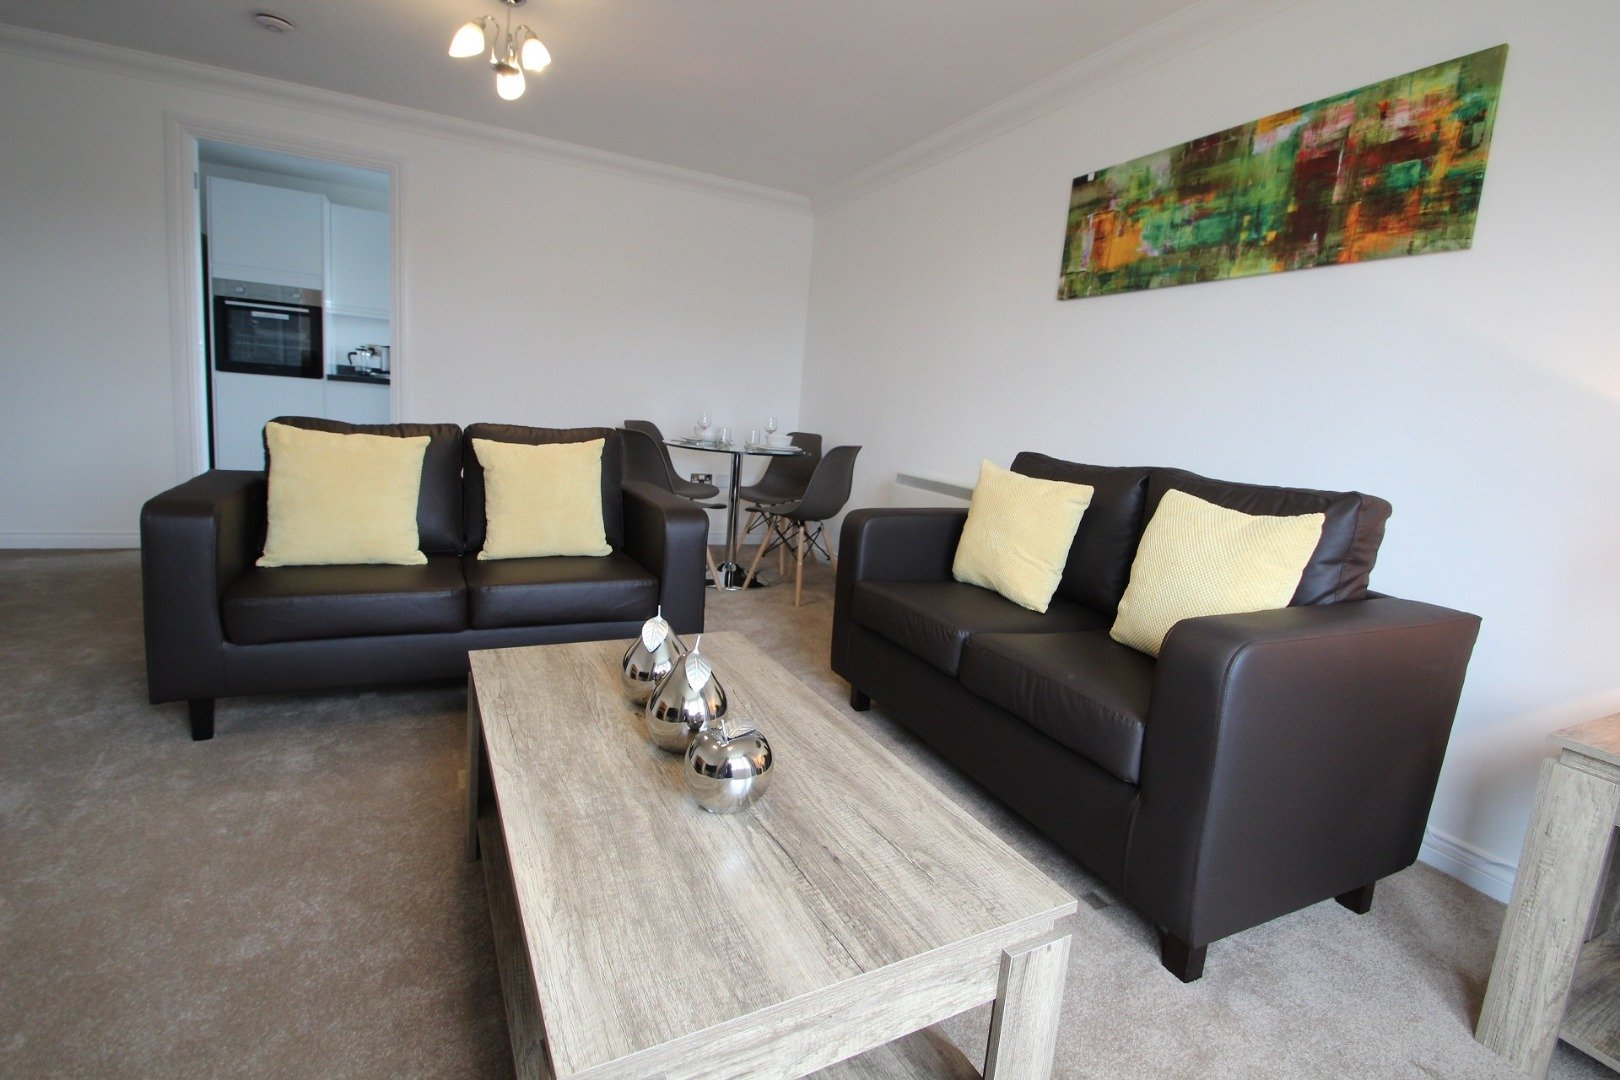 Book-spacious-and-modern-Holiday-Apartments-Windsor,-Berkshire-today-with-Free-Wifi,-On-site-Parking-&-Weekly-Housekeeping-&-benefit-from-the-best-rates-now